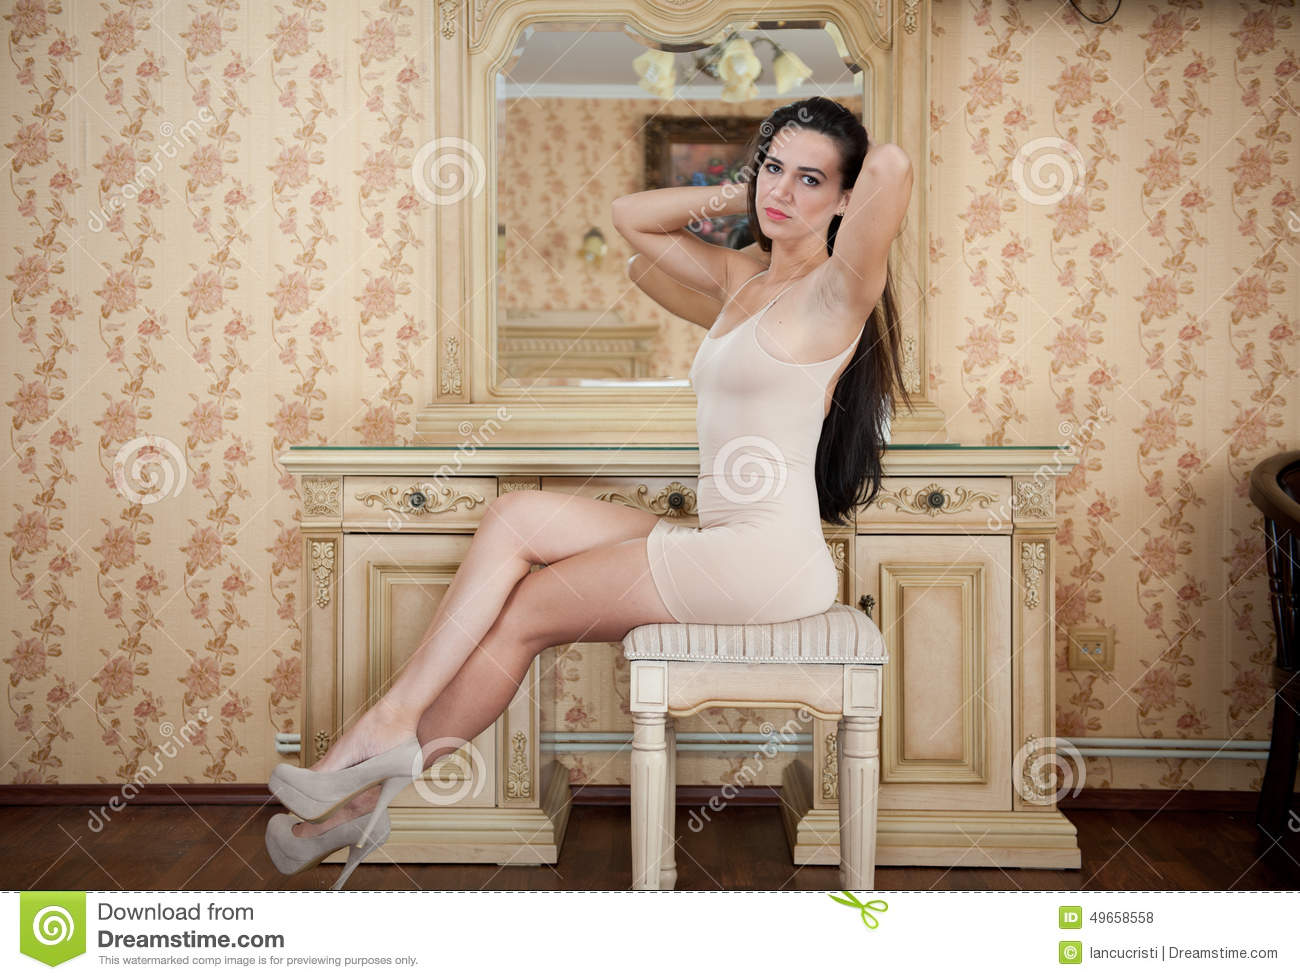 Young women sitting naked in front of mirror